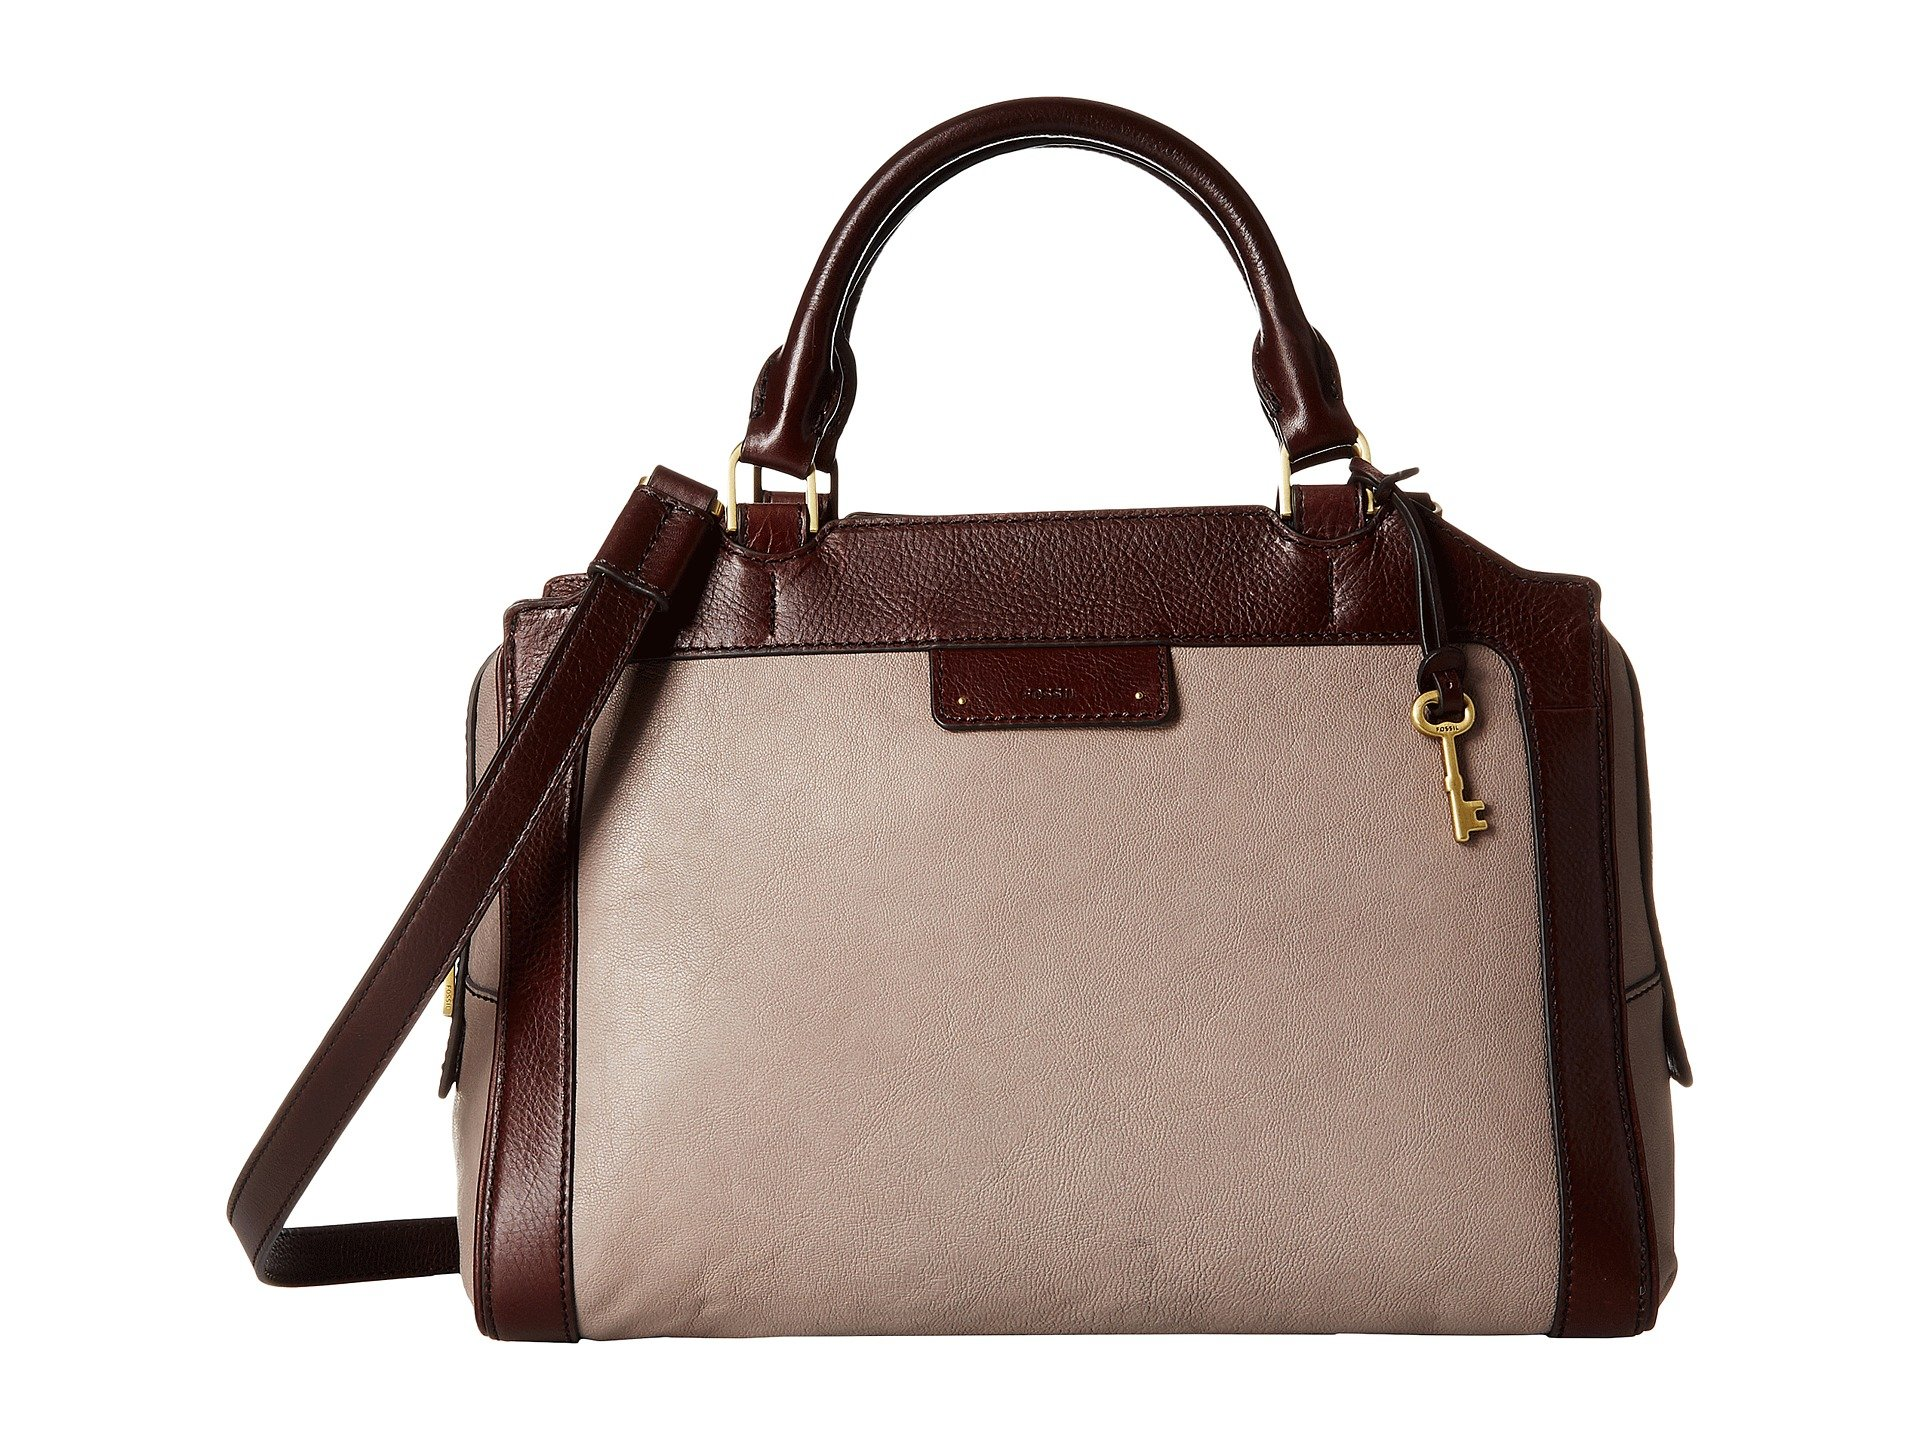 Logan Large Satchel